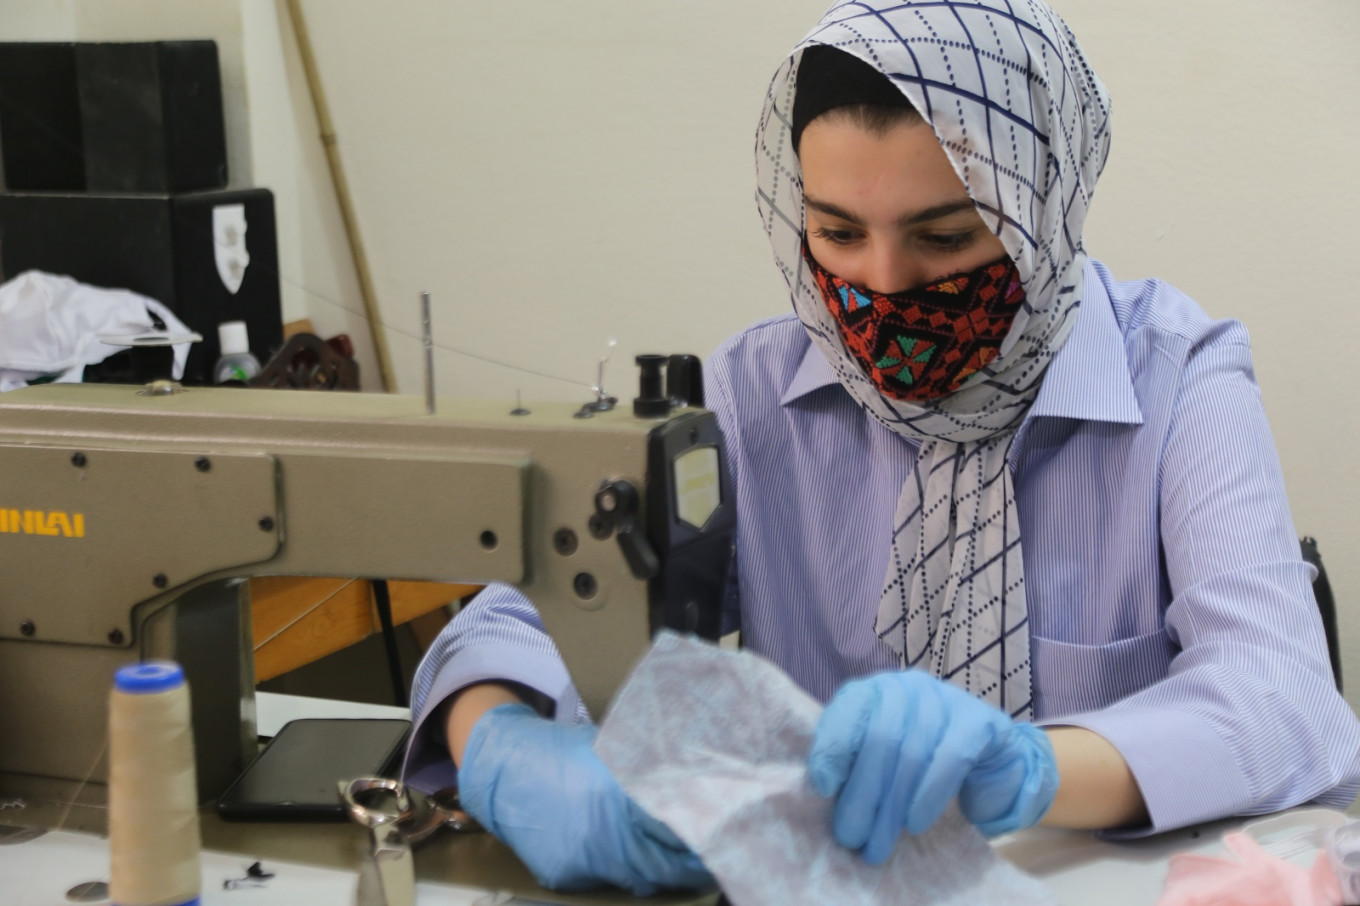 Women in Egypt's restive Sinai bring Bedouin embroidery to virus fight